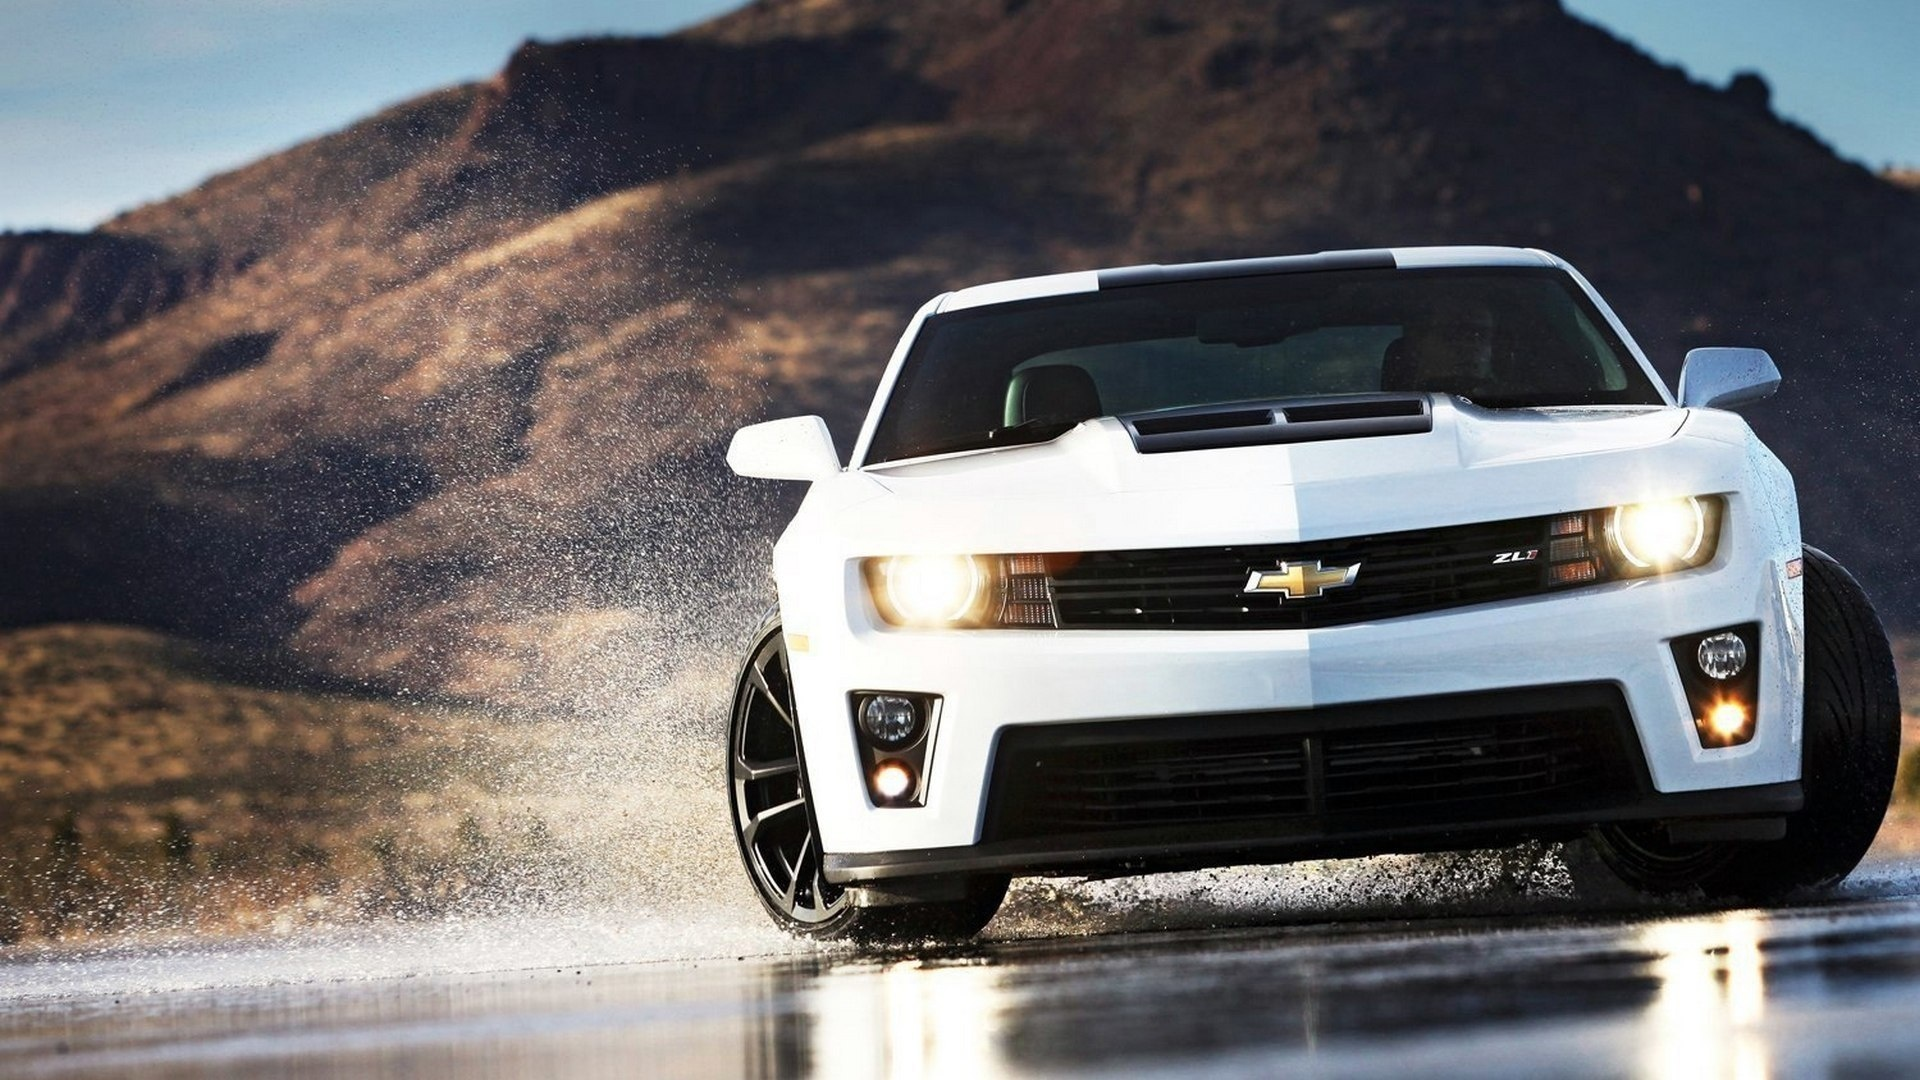 HD Chevy Wallpapers 1920x1080